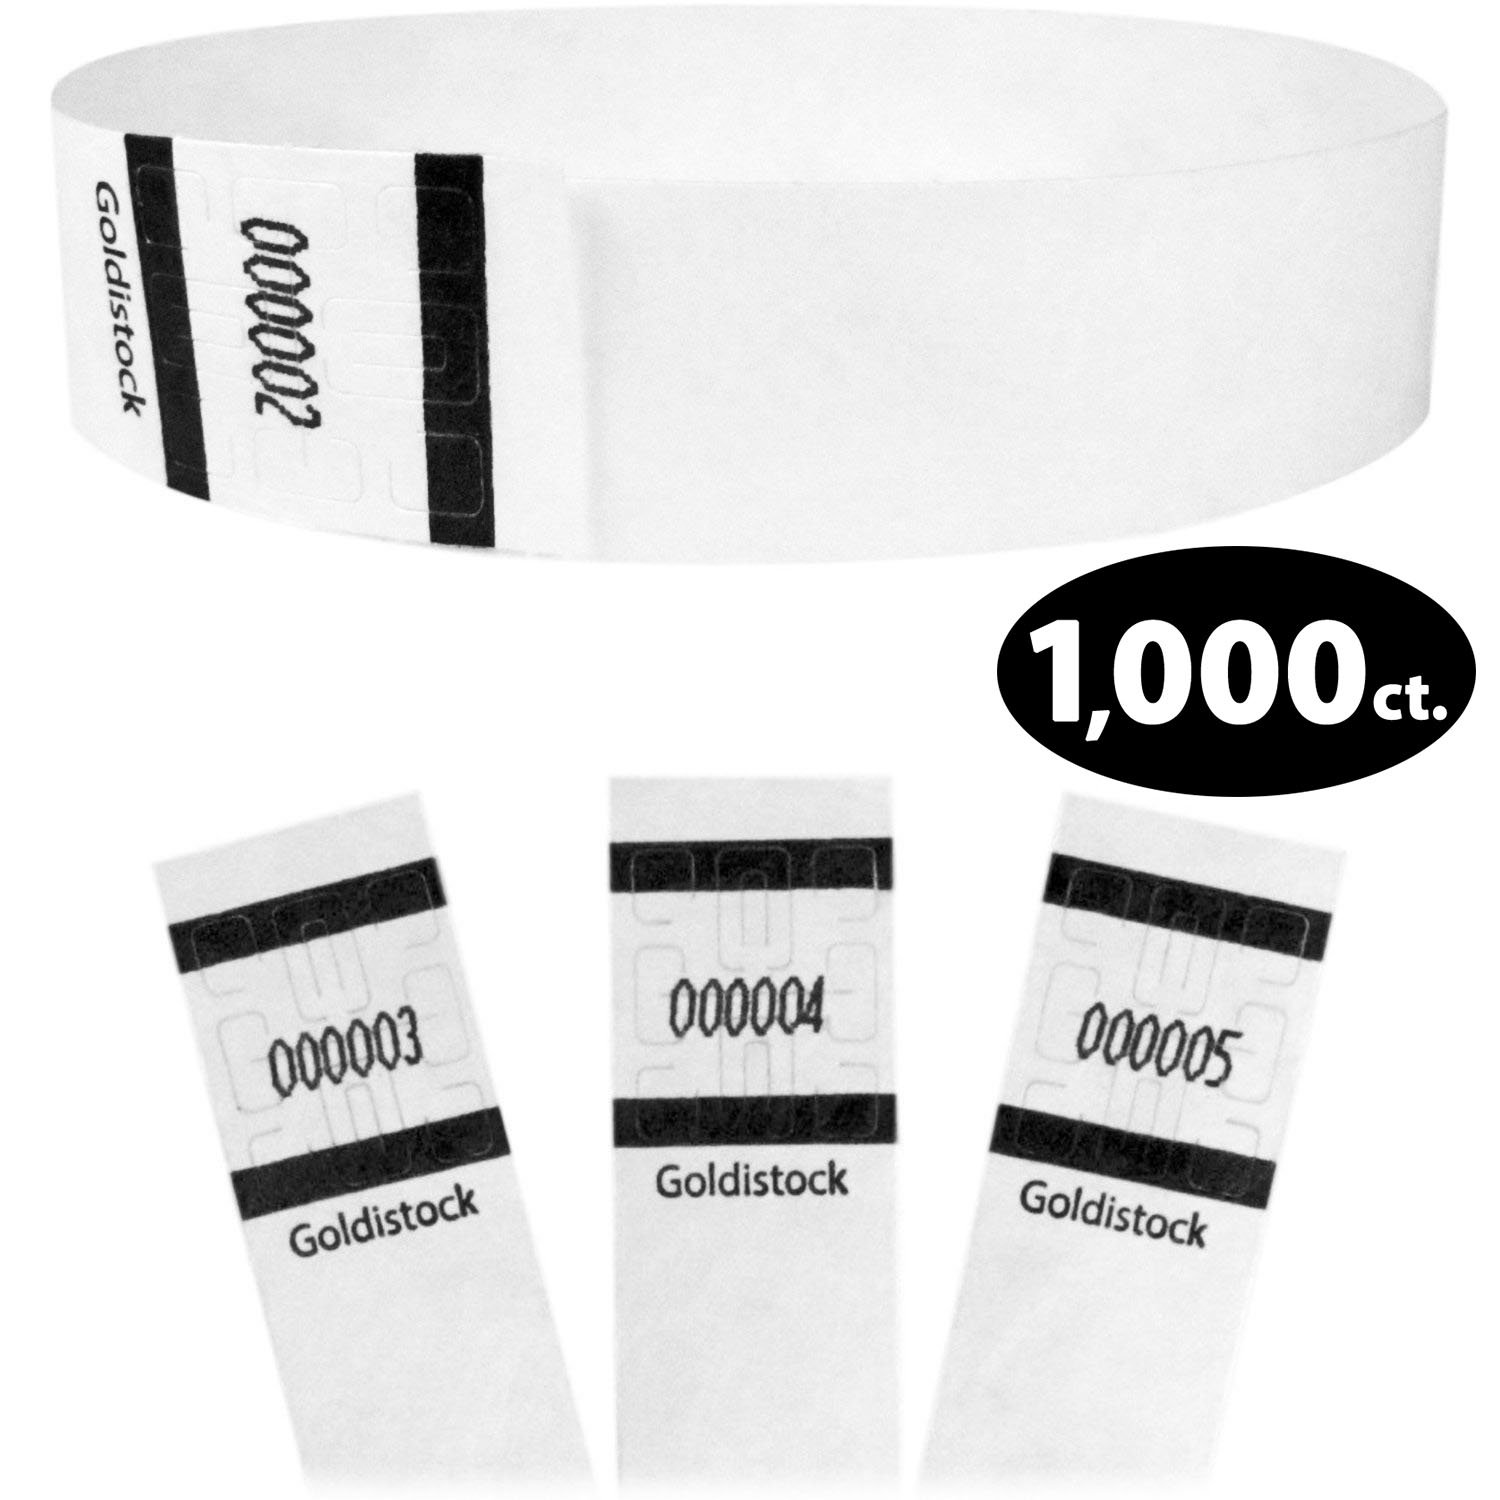 Goldistock Original Series - 3/4'' Tyvek Wristbands Formal White 1,000 Count Value Pack - Event Identification Bands (Paper - Like Texture)